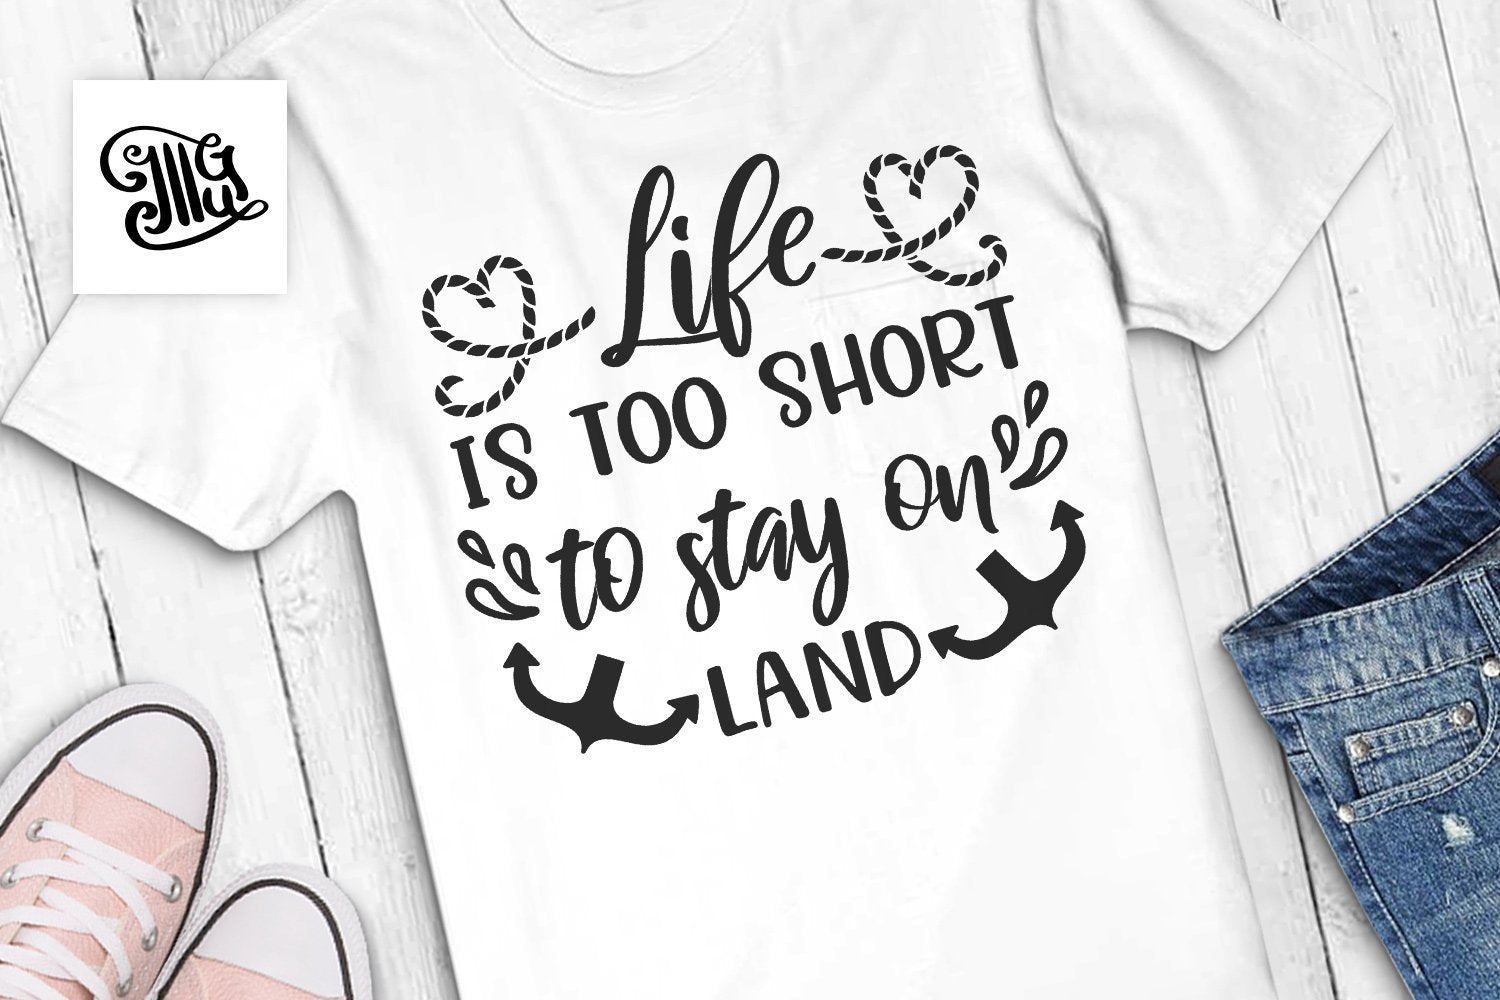 Cruise svg, Life is too short to stay on land svg, ship trip svg, anchor svg, vacation svg, cruise shirt svg, nautical svg-by Illustrator Guru